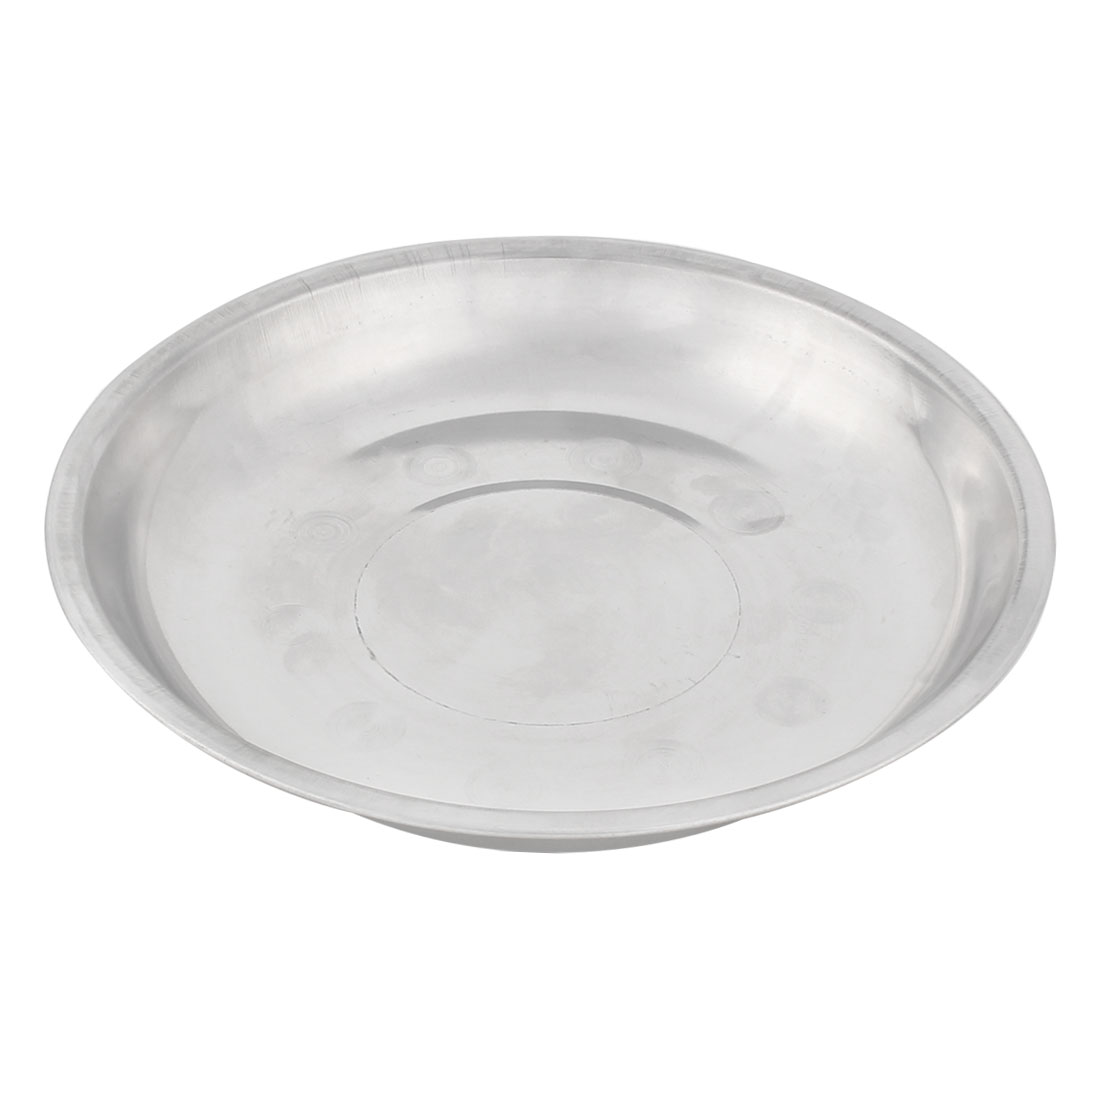 Household Kitchen Stainless Steel Round Shaped Dish Plate Silver Tone 17cm Diameter